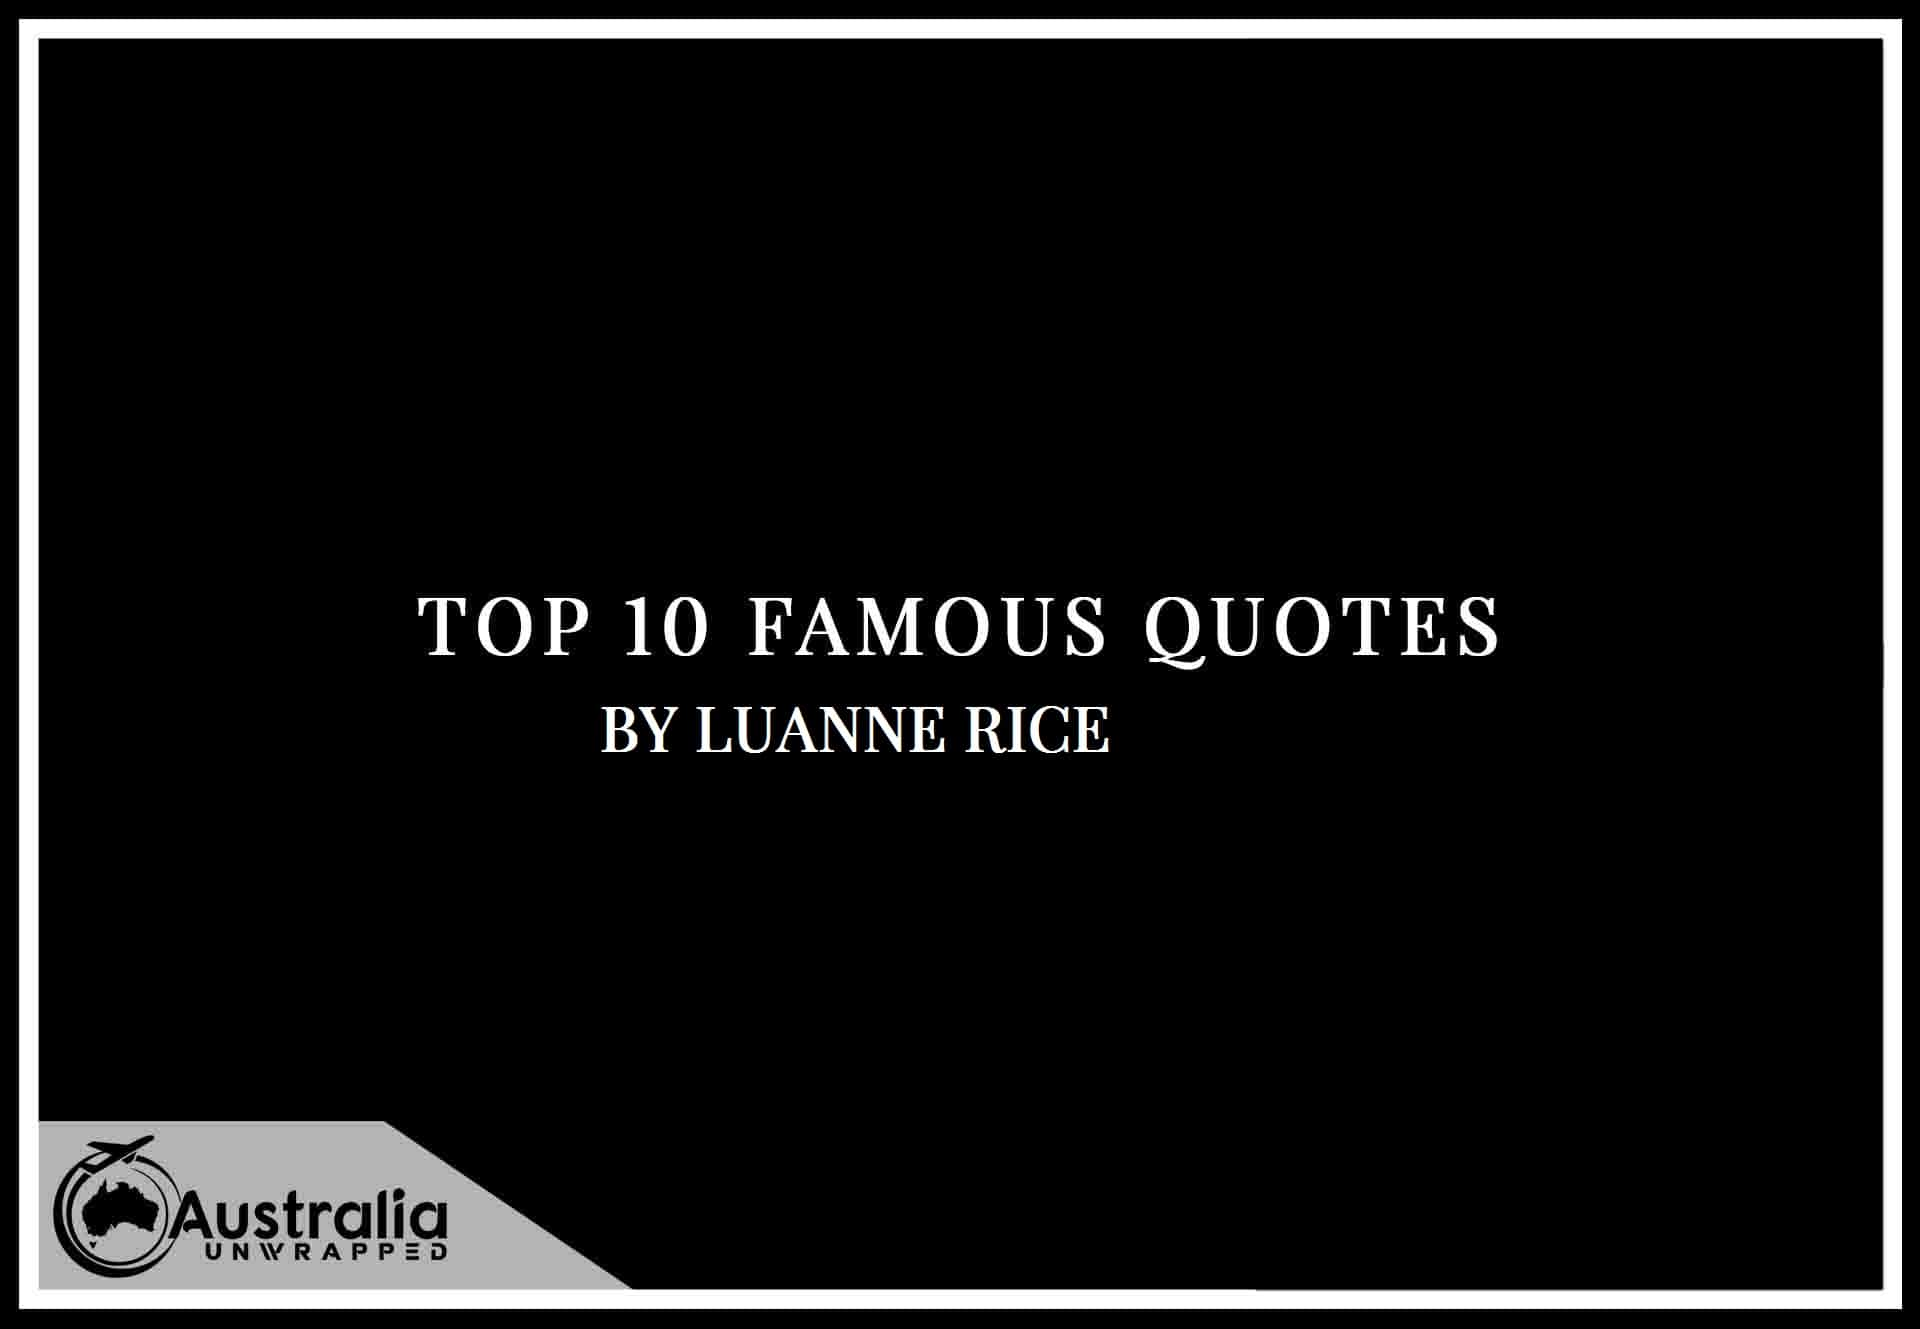 Luanne Rice's Top 10 Popular and Famous Quotes